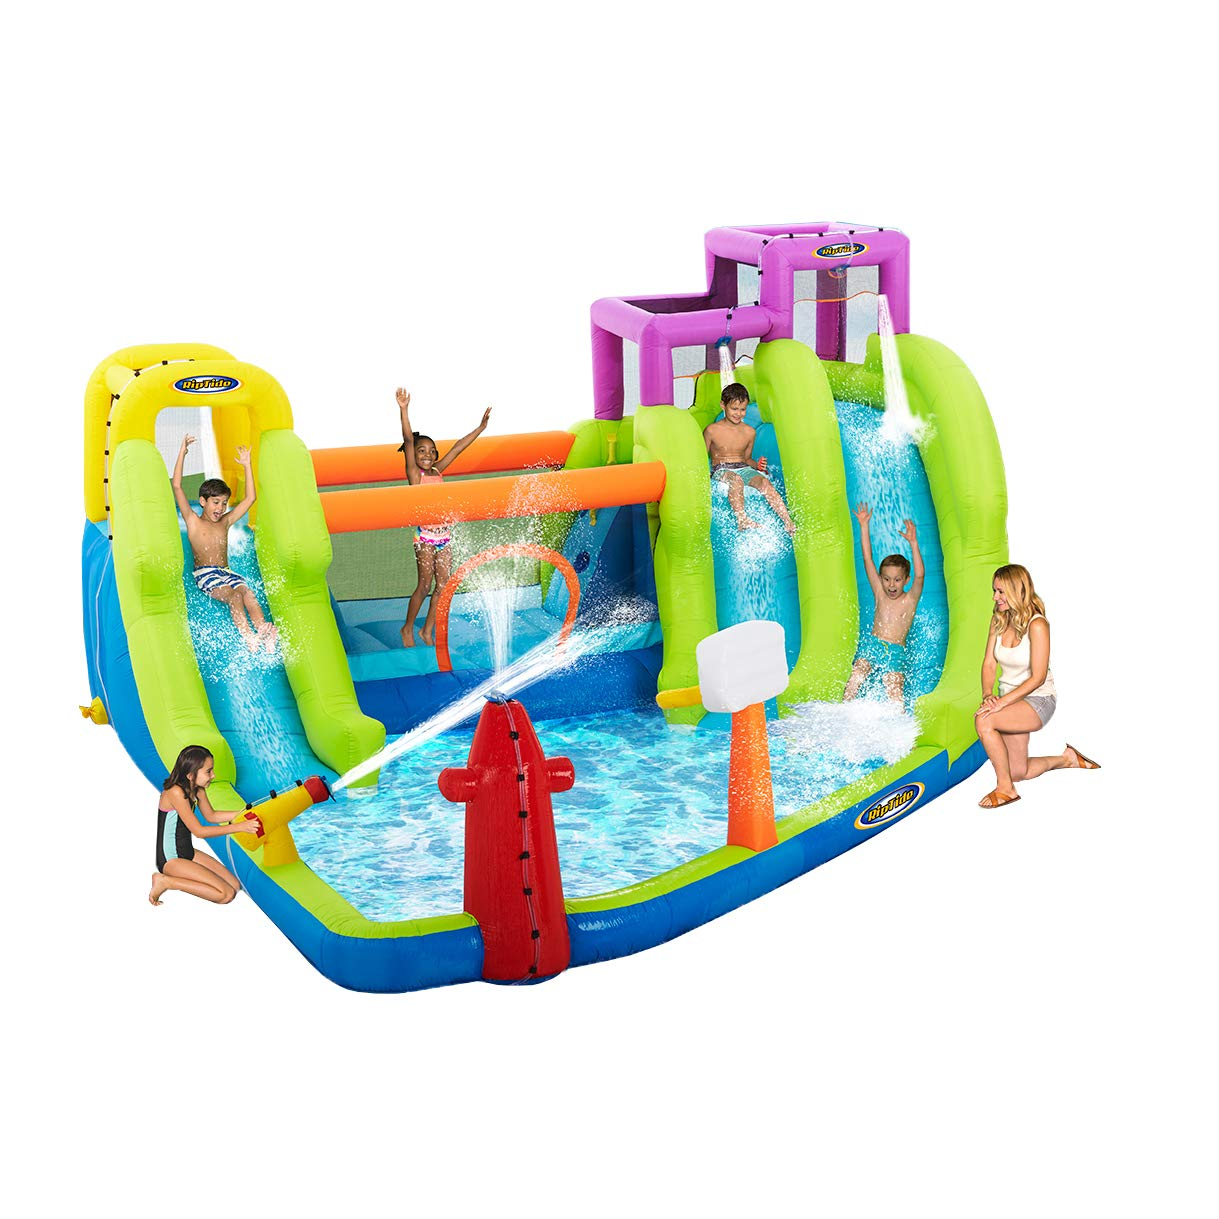 Riptide Triple Fun Inflatable PVC Water Park with 3 Slides & Obstacle Course by Riptide (Image #2)